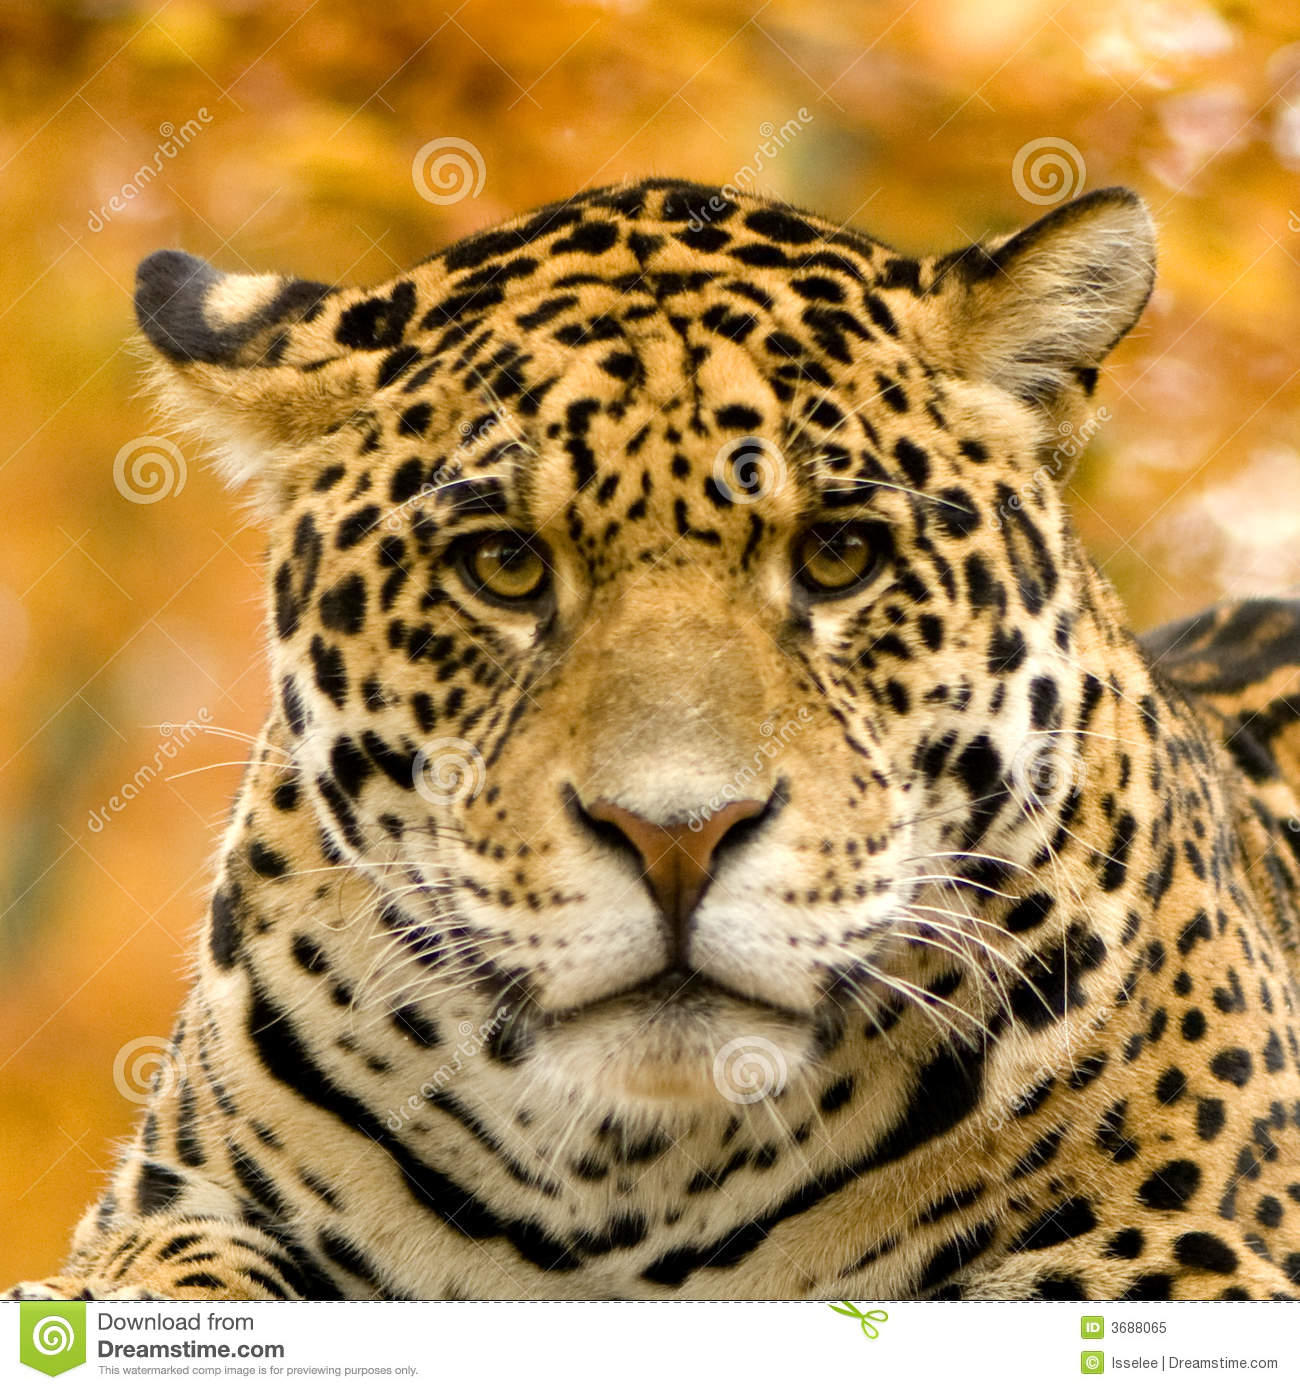 Jaguar - Panthera Onca Royalty Free Stock Photo - Image: 3688065